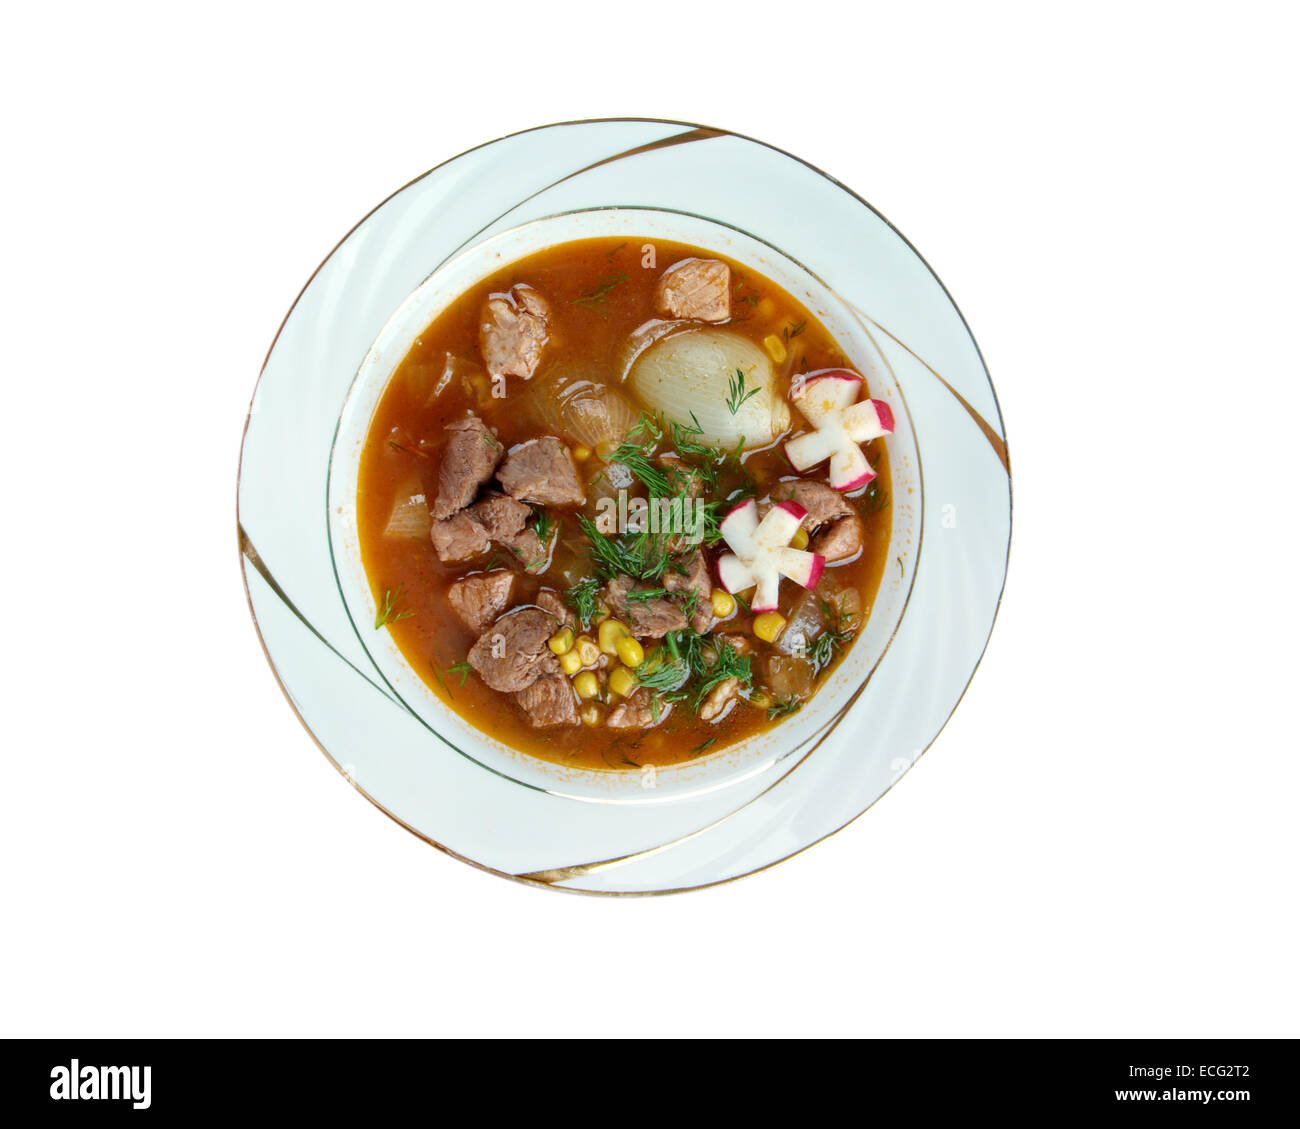 Pozole Рохо - traditional soup Mexico.broth rich soup made with pork, red chiles, radishes, cilantro Stock Photo